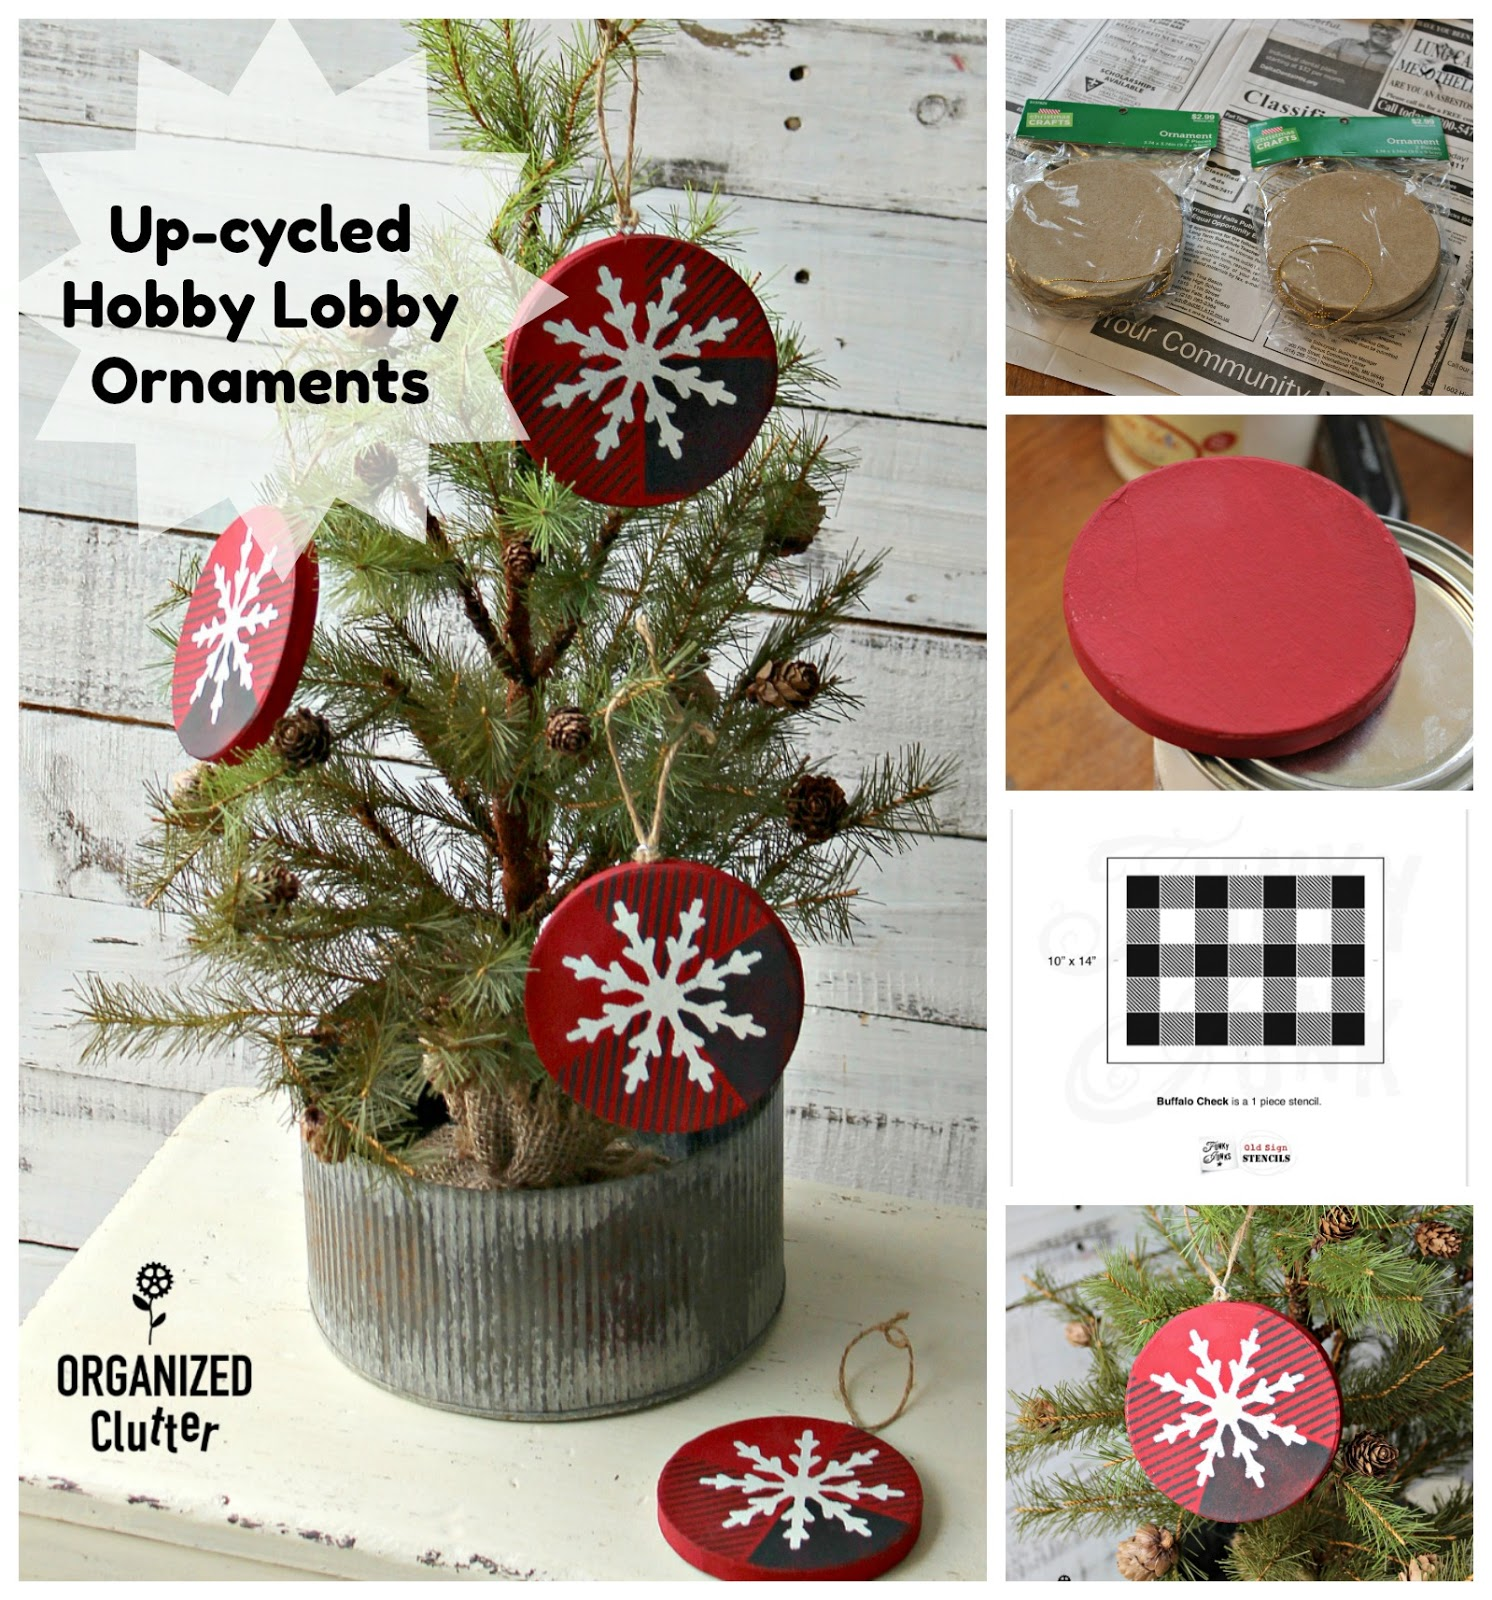 Hobby Lobby Regent Square Christmas Ornament 2021 With Us Always Up Cycled Hobby Lobby Paper Christmas Ornaments Organized Clutter